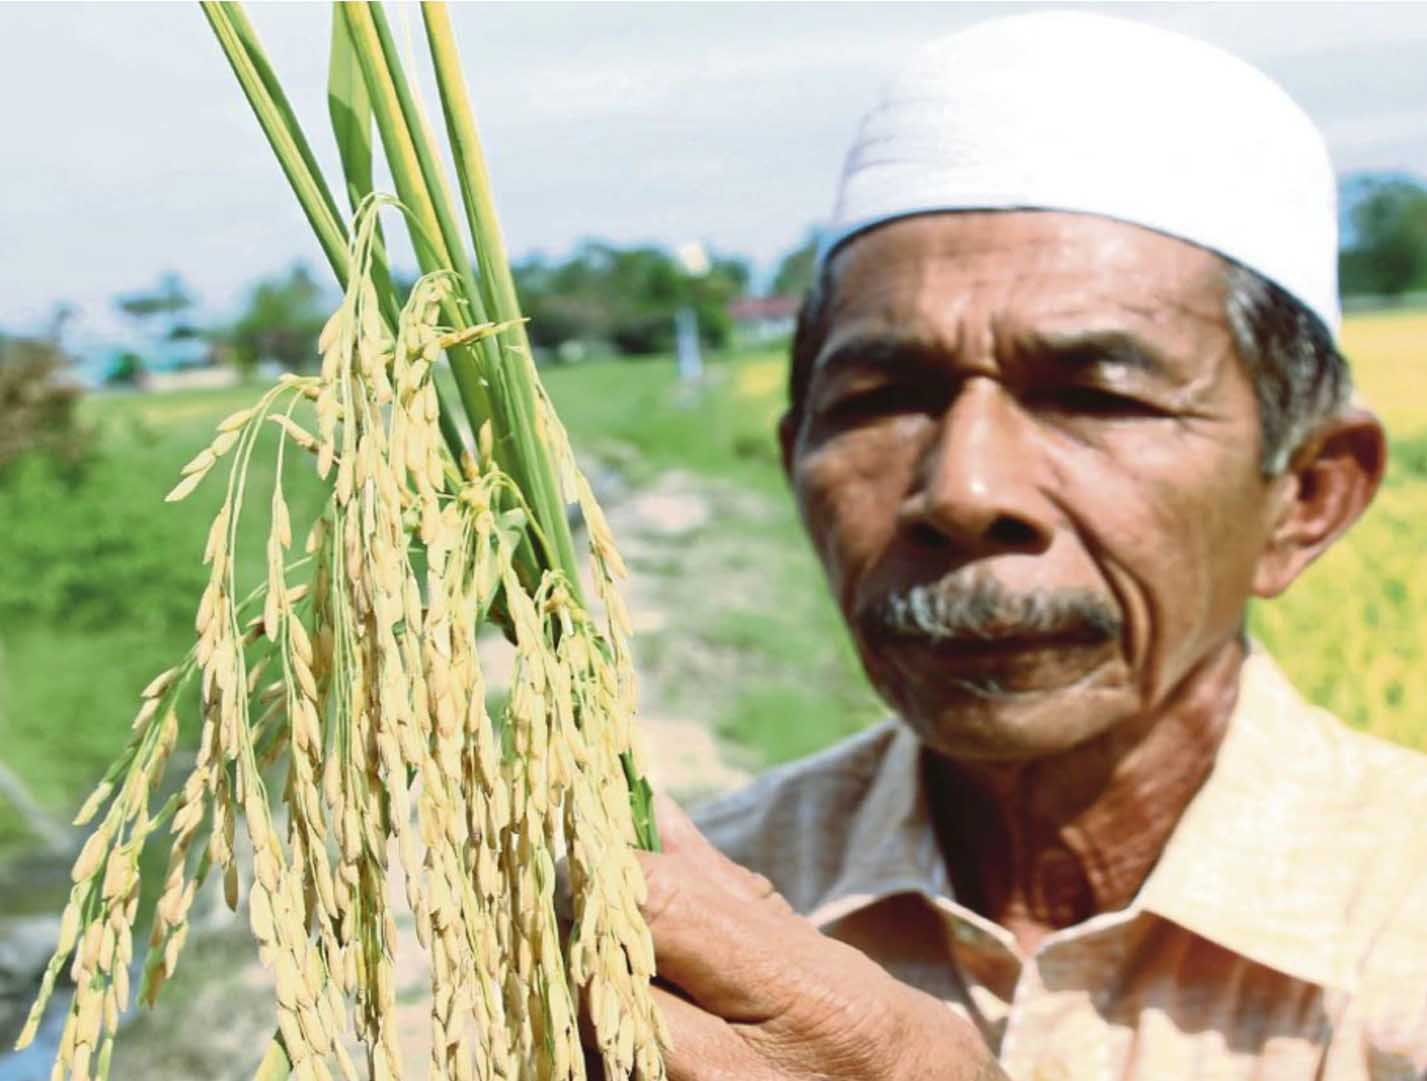 Terengganu's rice production volume can only meet about 60 per cent of the local demand and the state needs to import rice from other states. FILE PIC